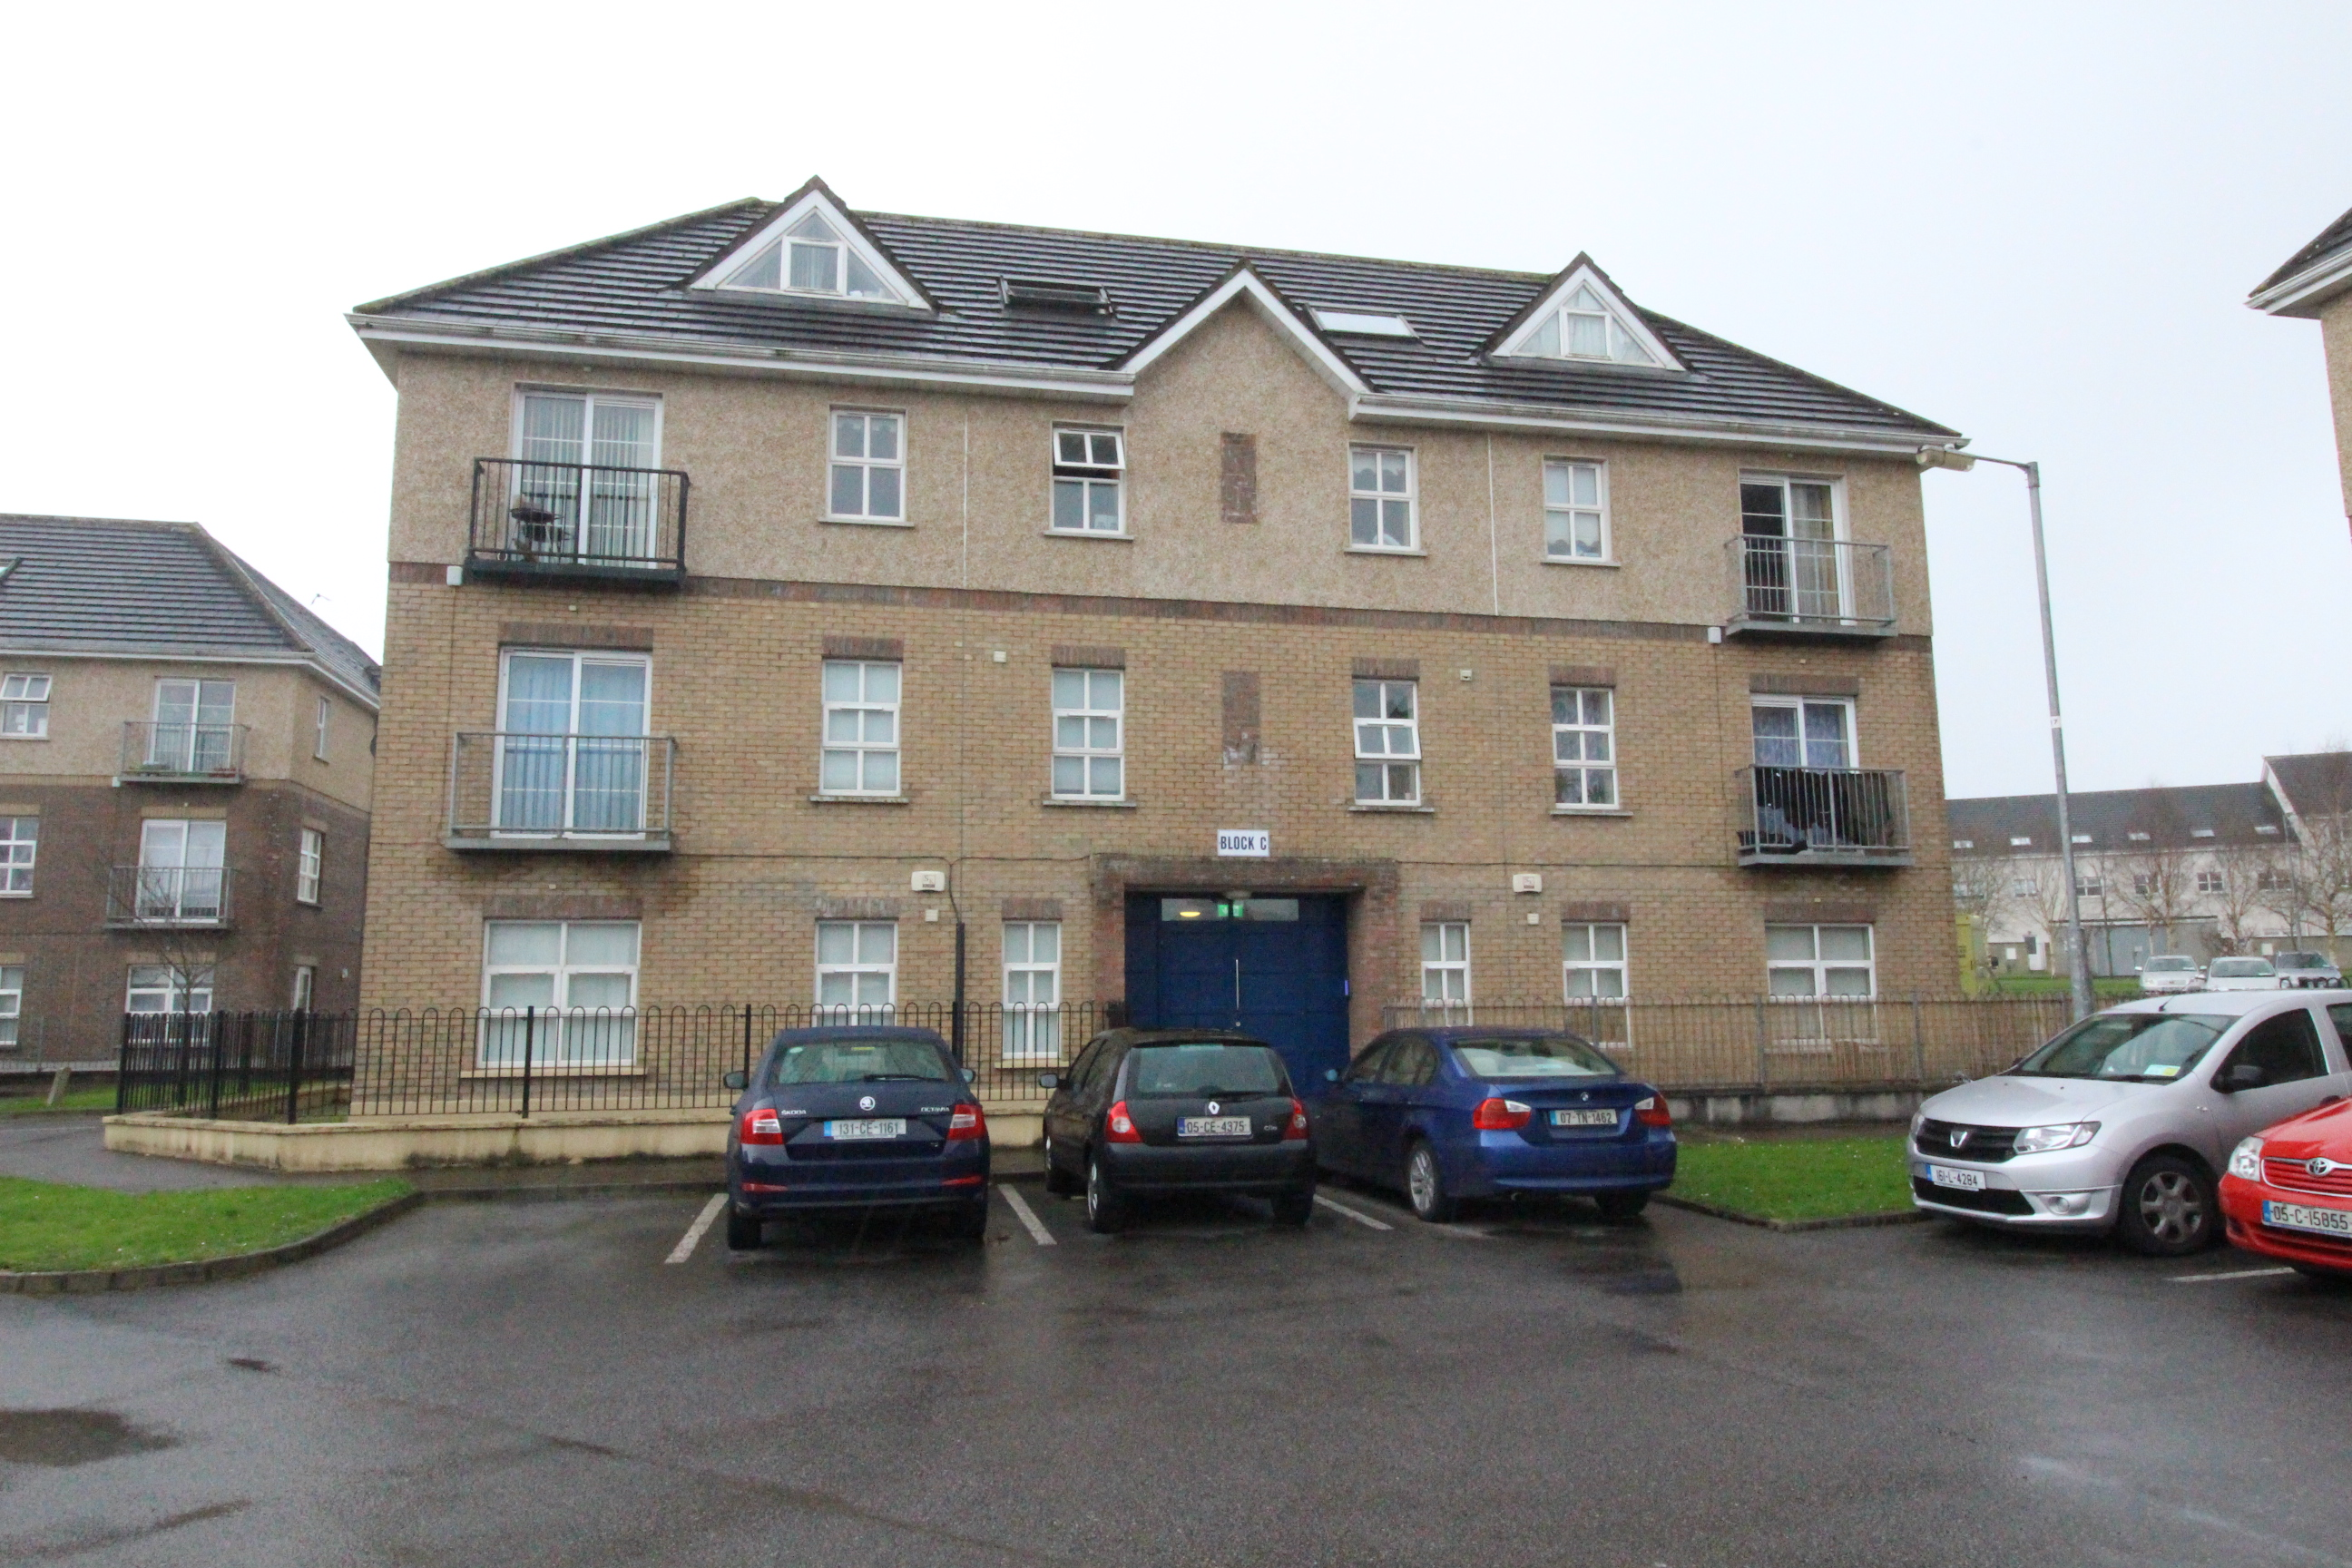 Apartment 6, Block C Ballycummin Village, Raheen, Limerick